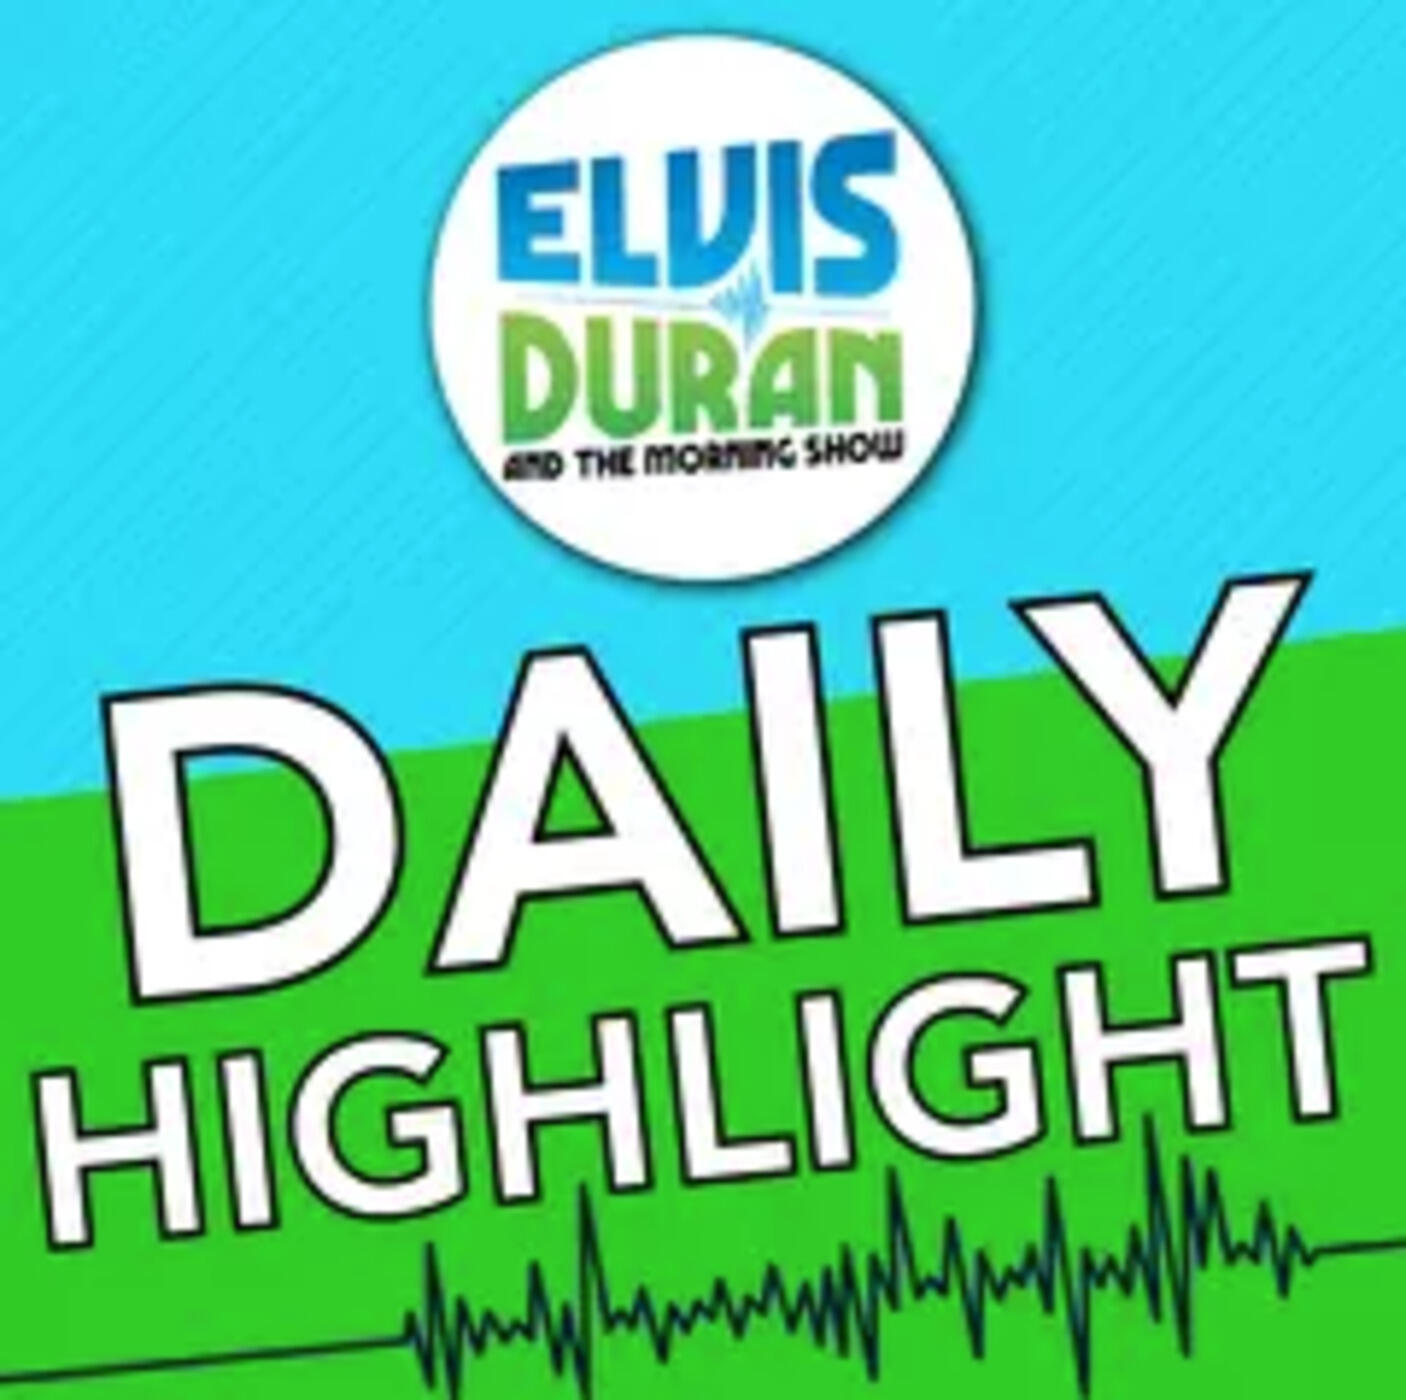 Listen to the Elvis Duran's Daily Highlight Episode - Daily Highlight: Taylor Swift Reveals Stories Behind The Songs On Her New Album LOVER on iHeartRadio | iHeartRadio